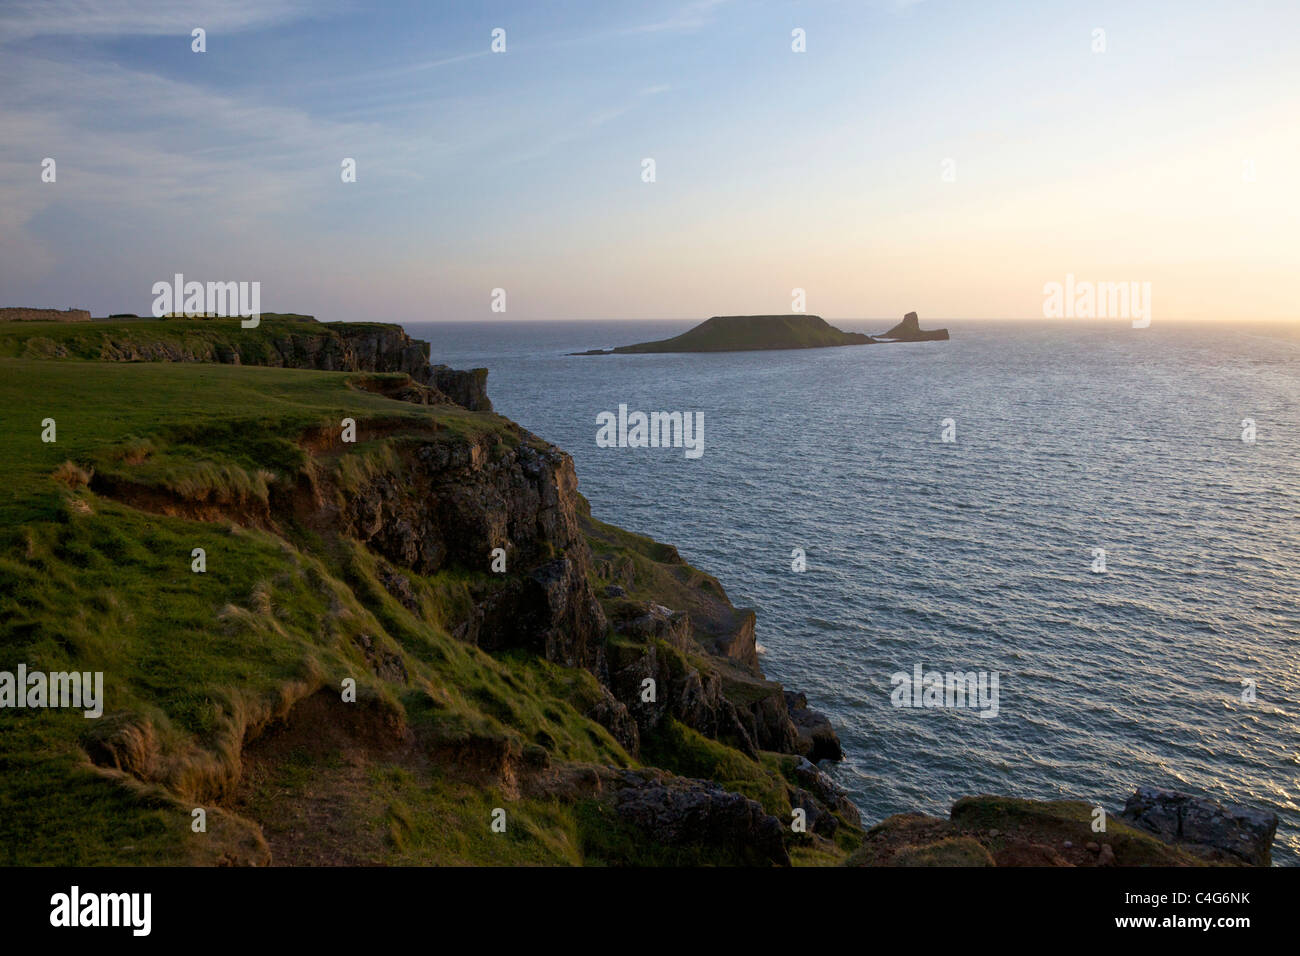 Worms Head Rhossili Gower Peninsula on spring evening, South Wales, Cymru, UK, GB, British Isles - Stock Image